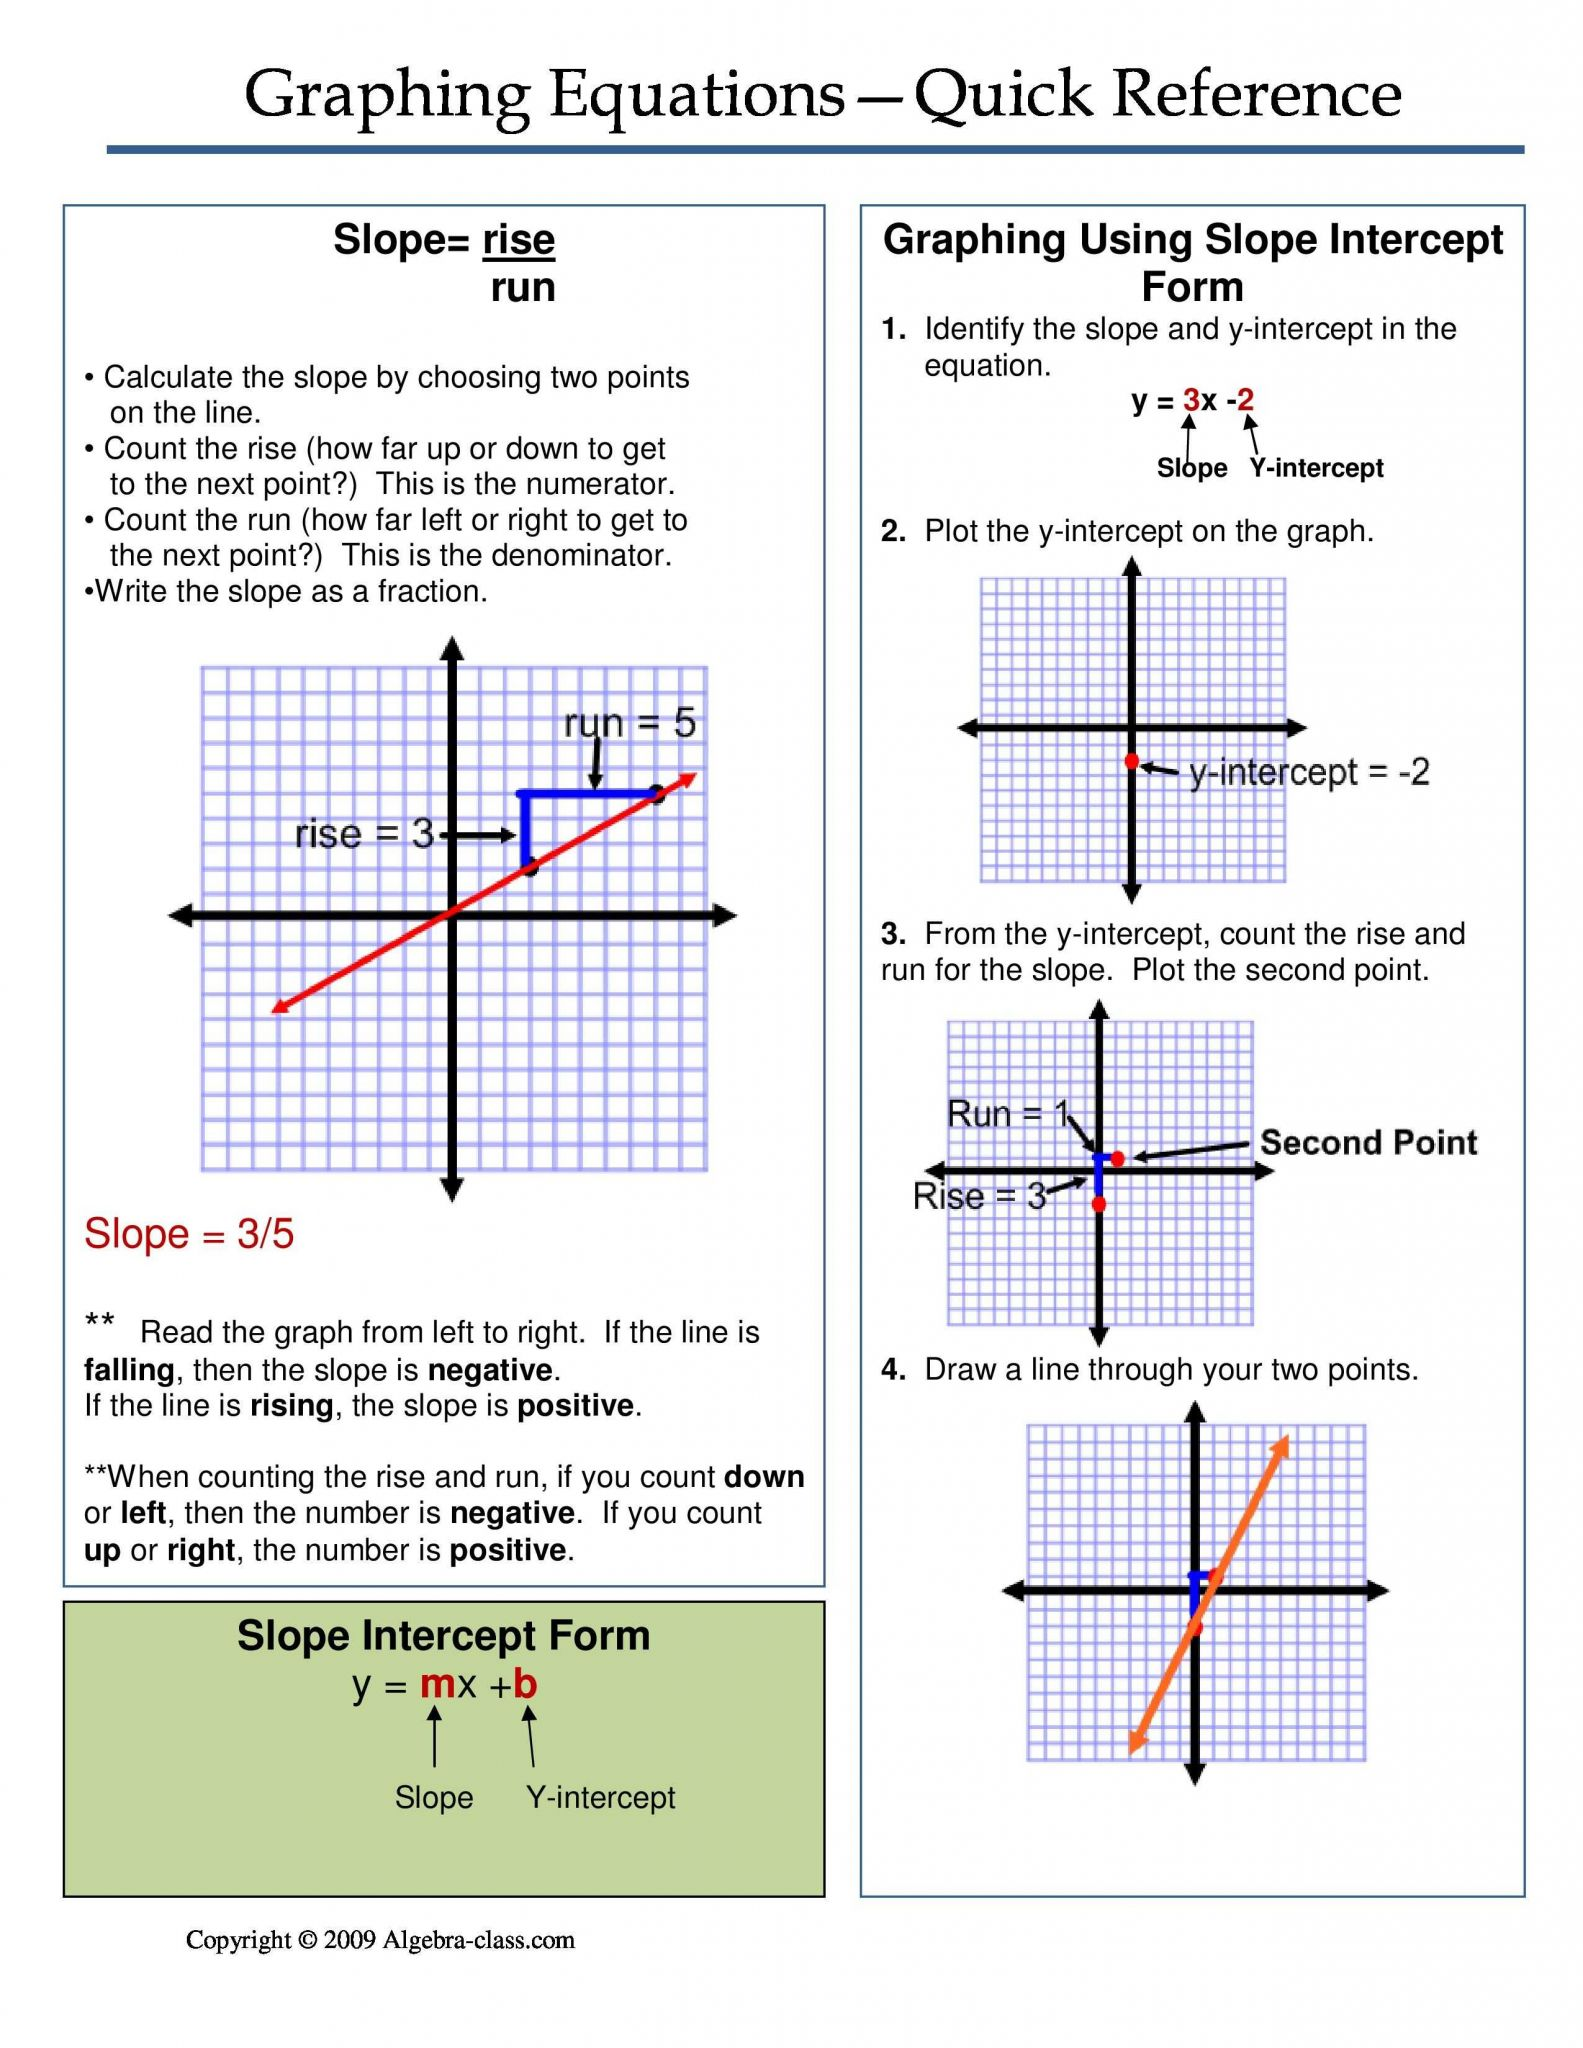 Equivalent Expressions Worksheet together with E Page Notes Worksheet for the Graphing Equations Unit